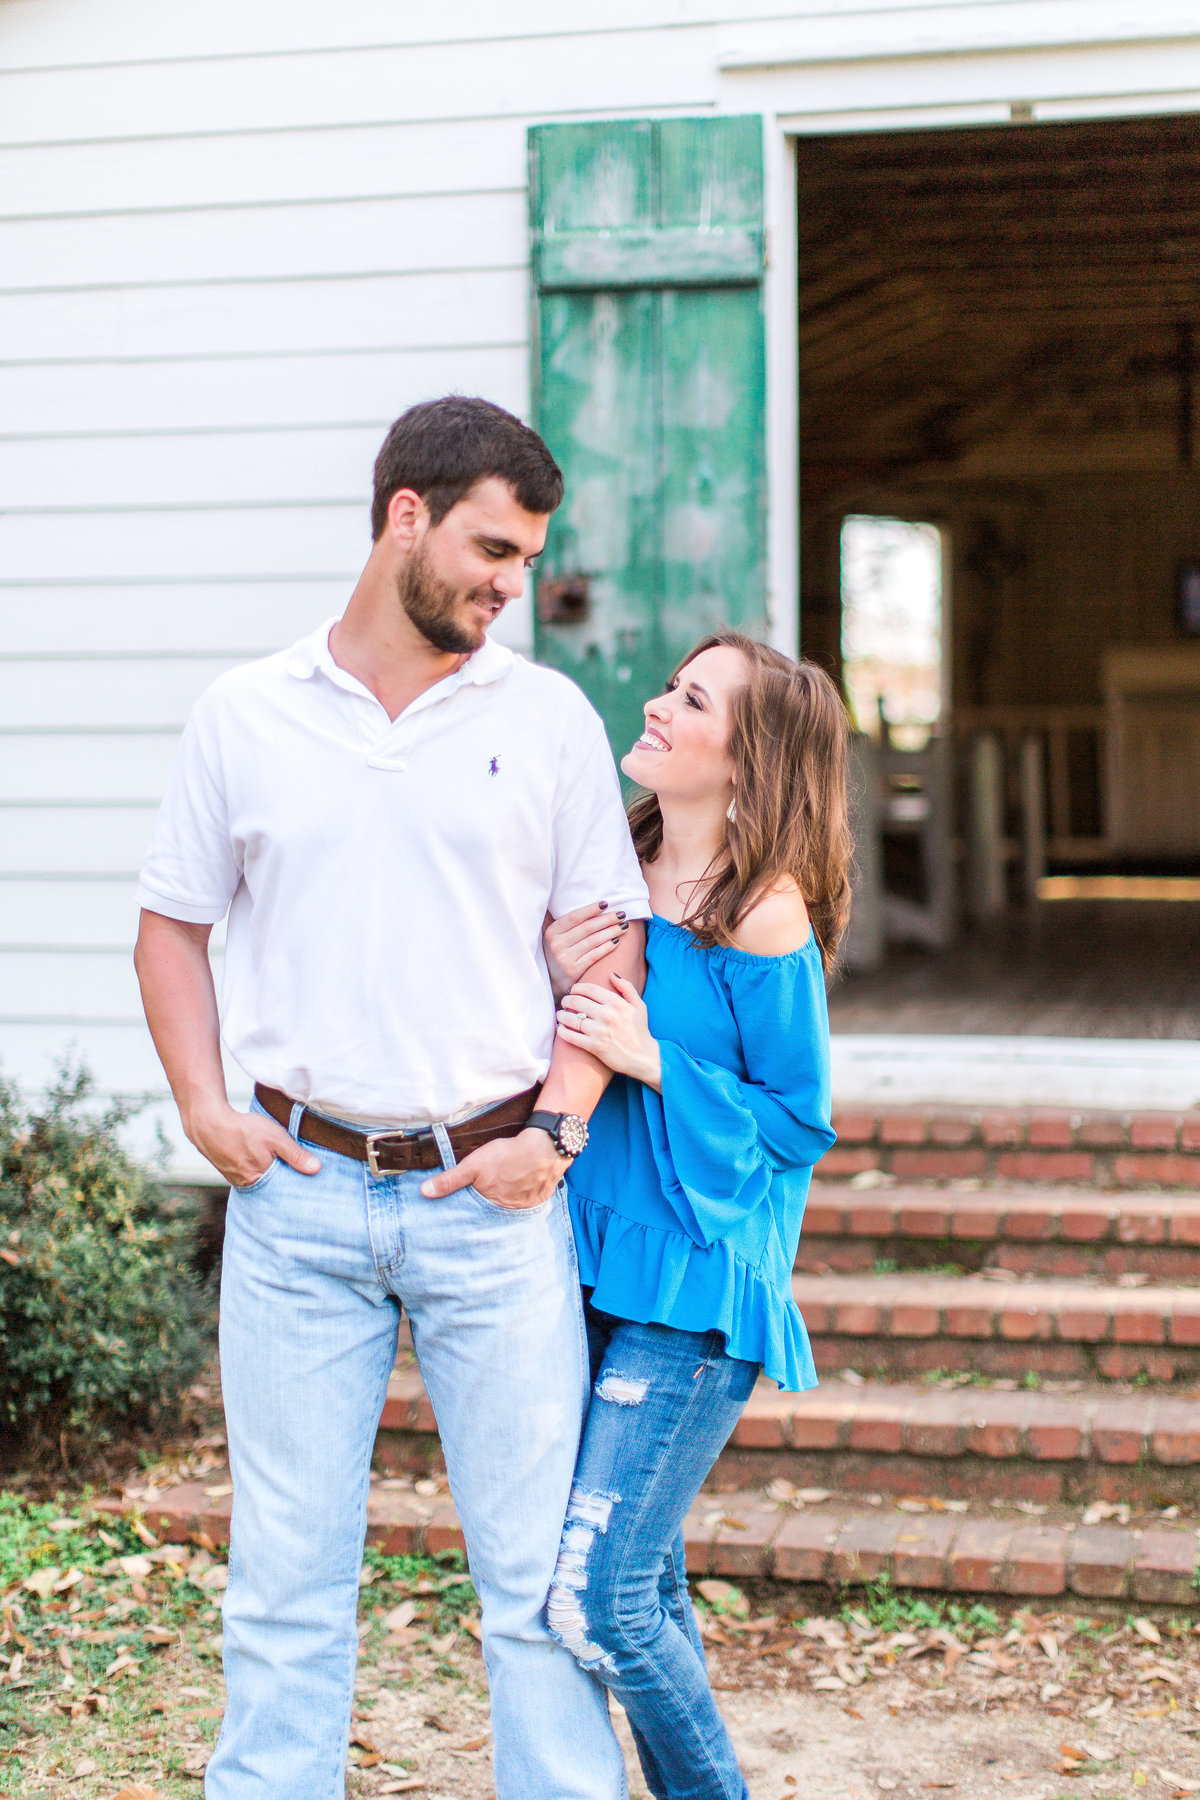 rural_life_museum_baton_rouge_engagement_session_13